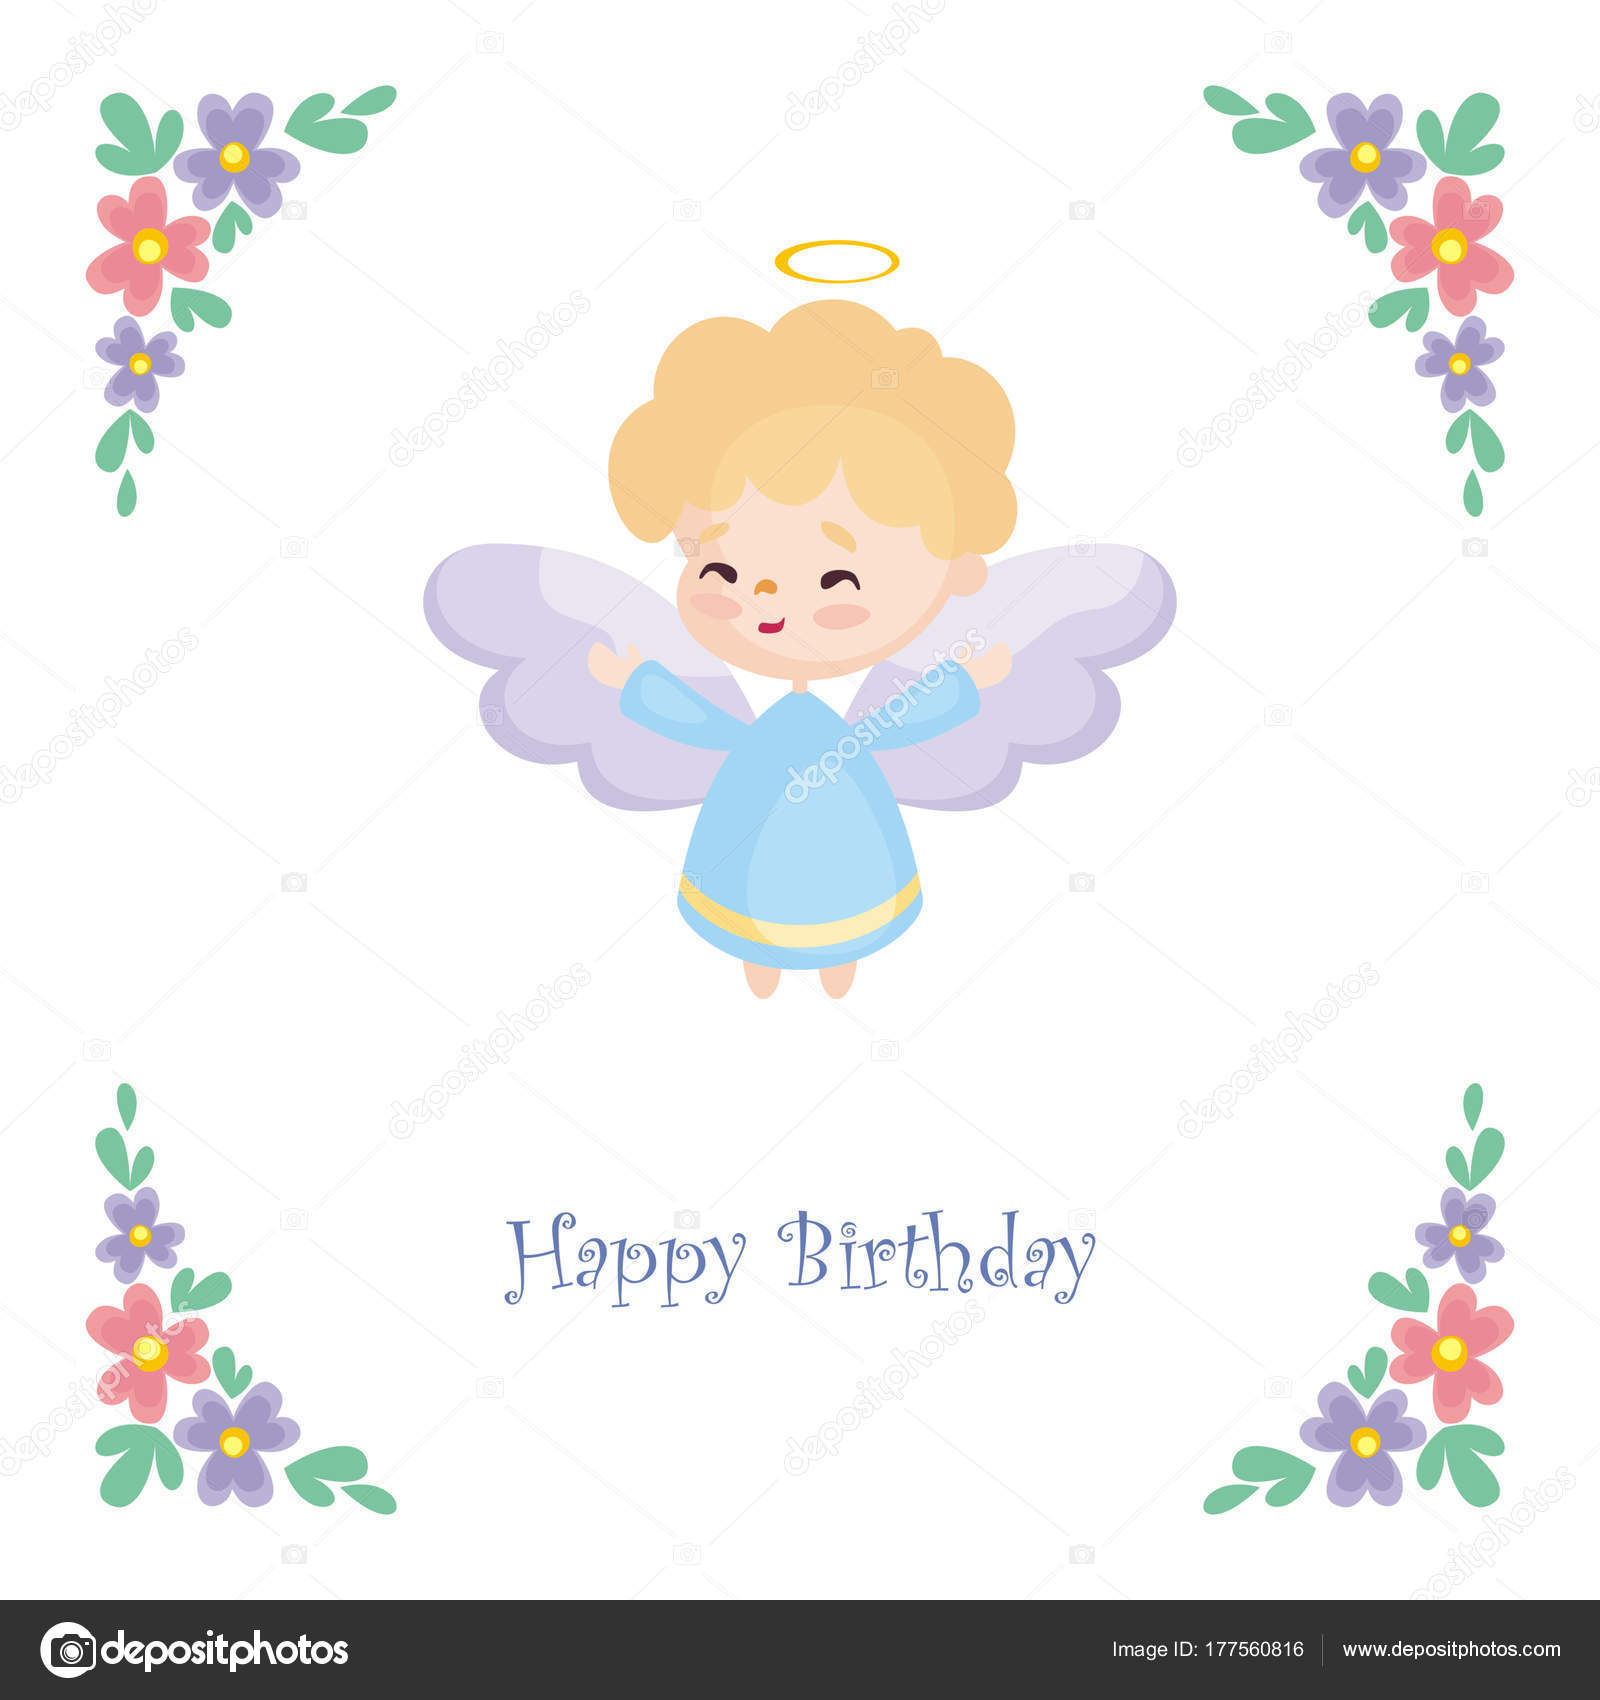 Birthday greeting card image pretty little angel vector illustration birthday greeting card image pretty little angel vector illustration white stock vector m4hsunfo